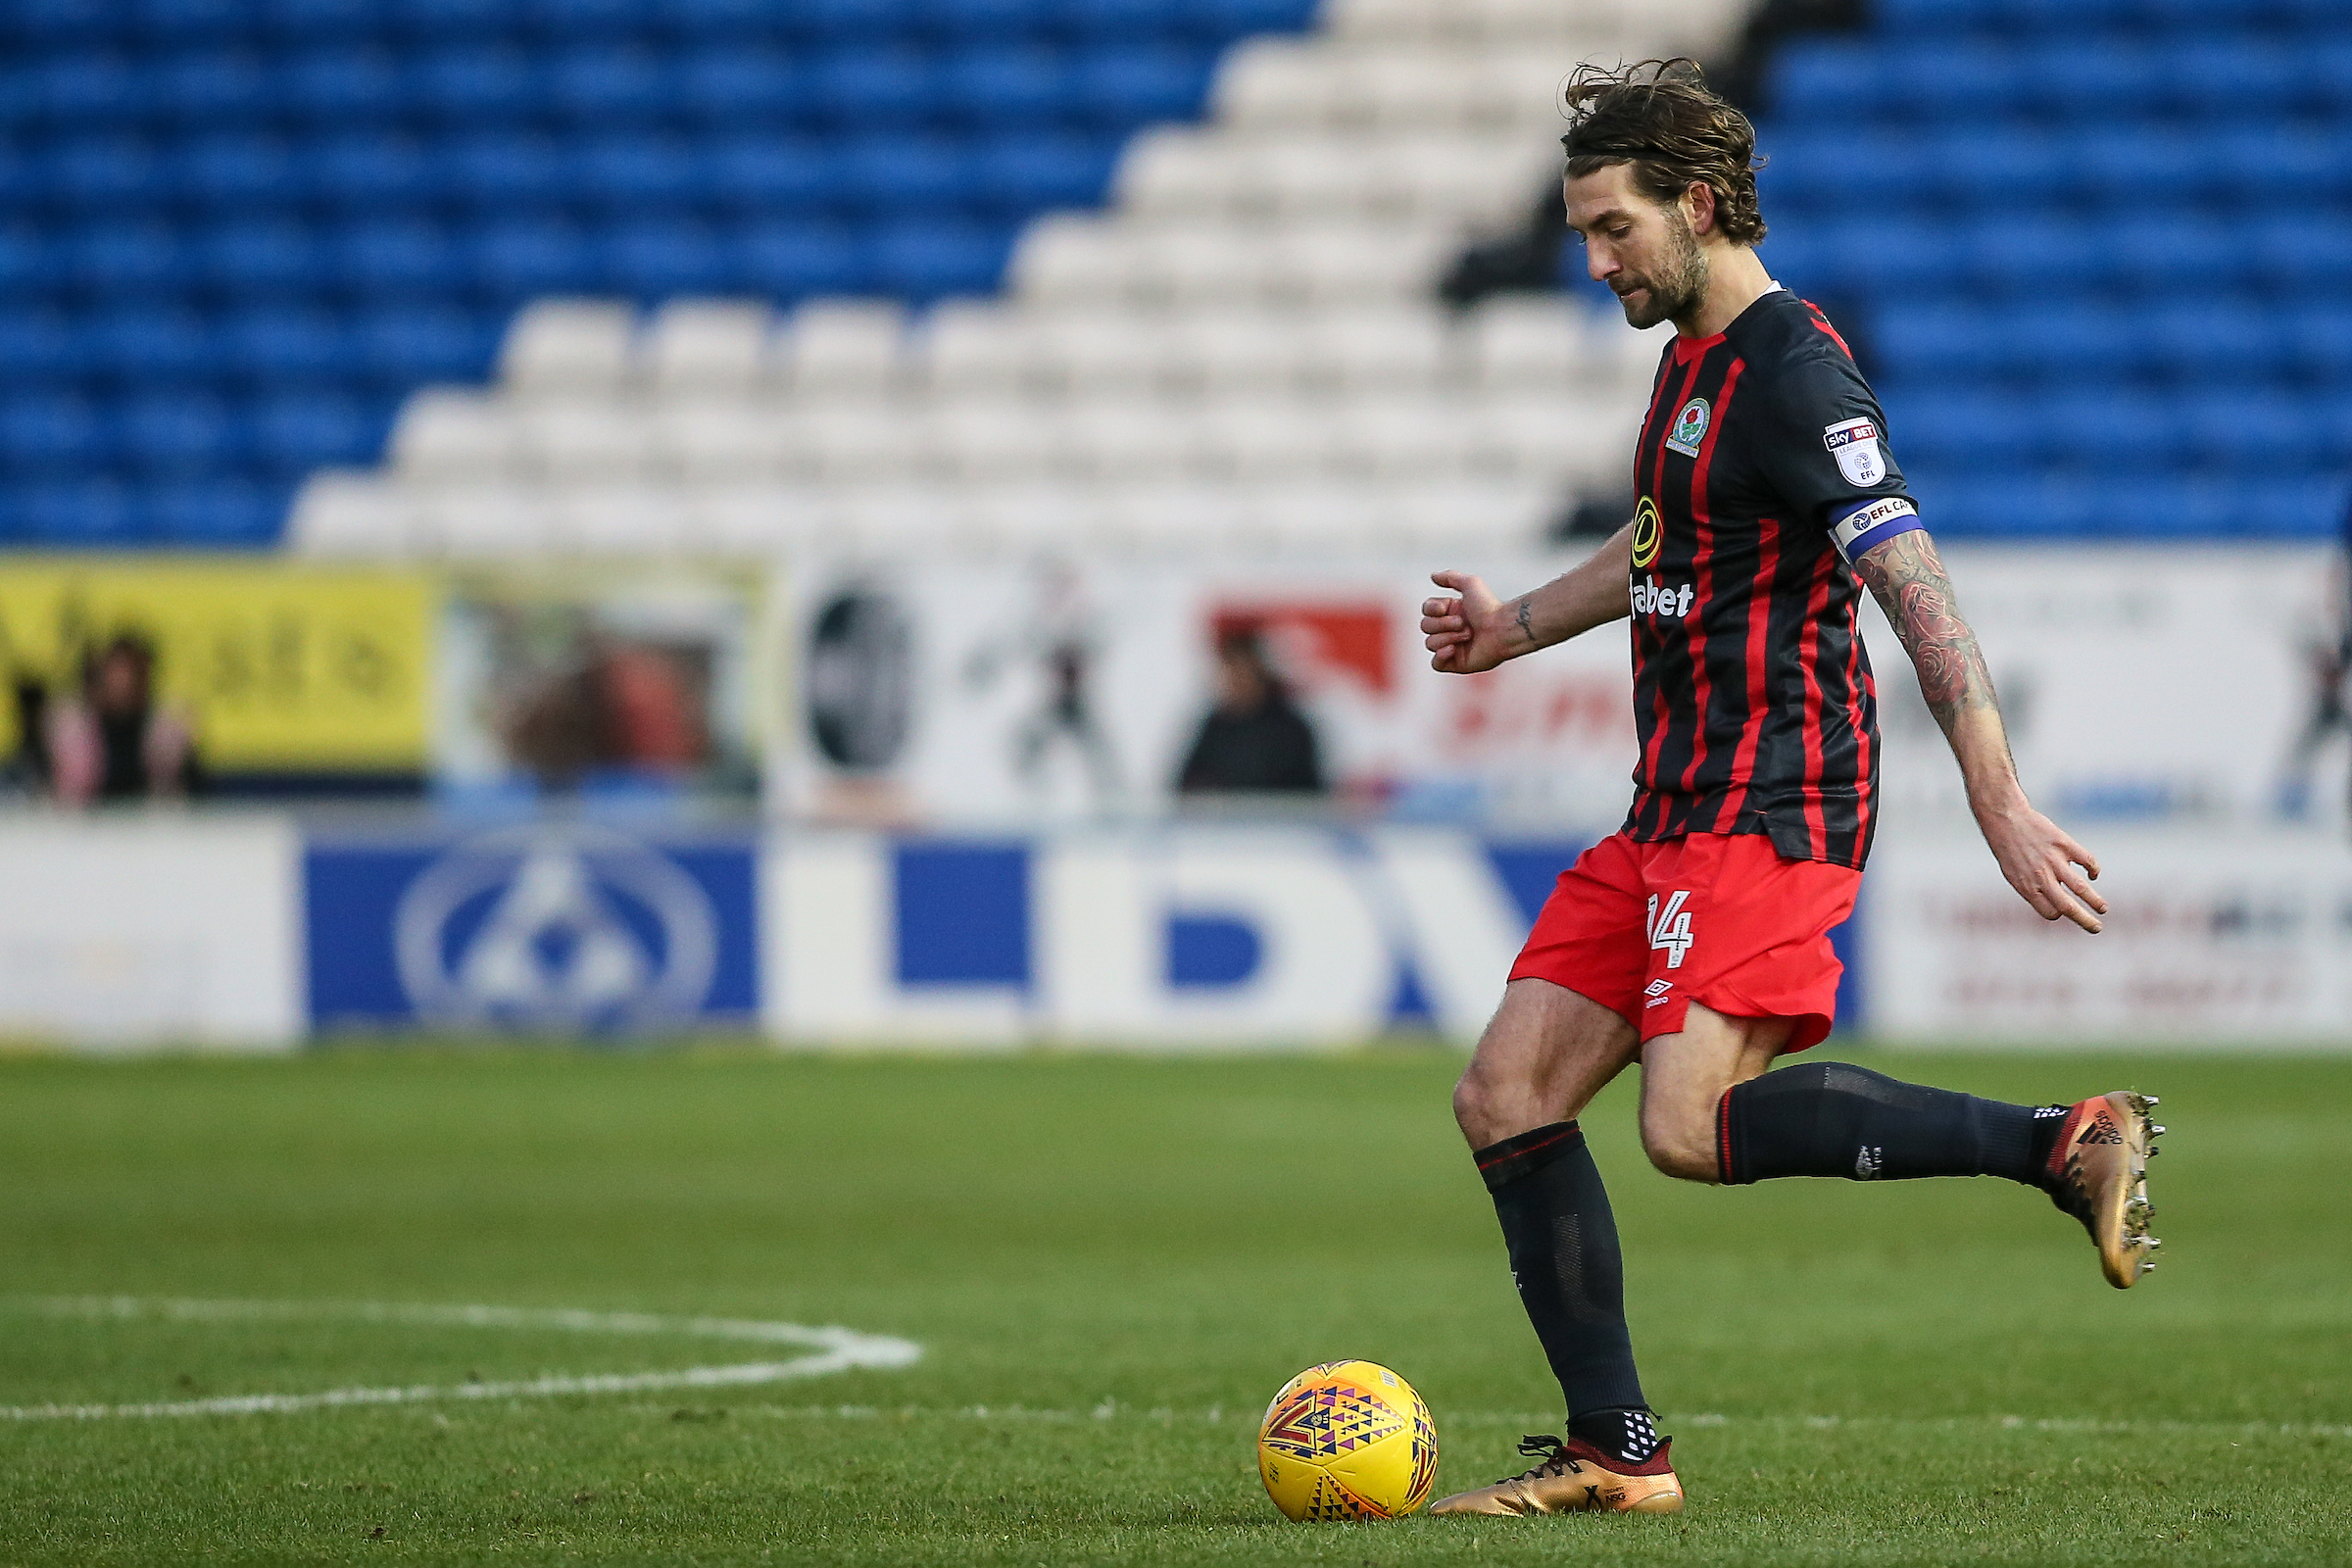 Charlie Mulgrew has been named in the Scotland squad for their upcoming friendlies